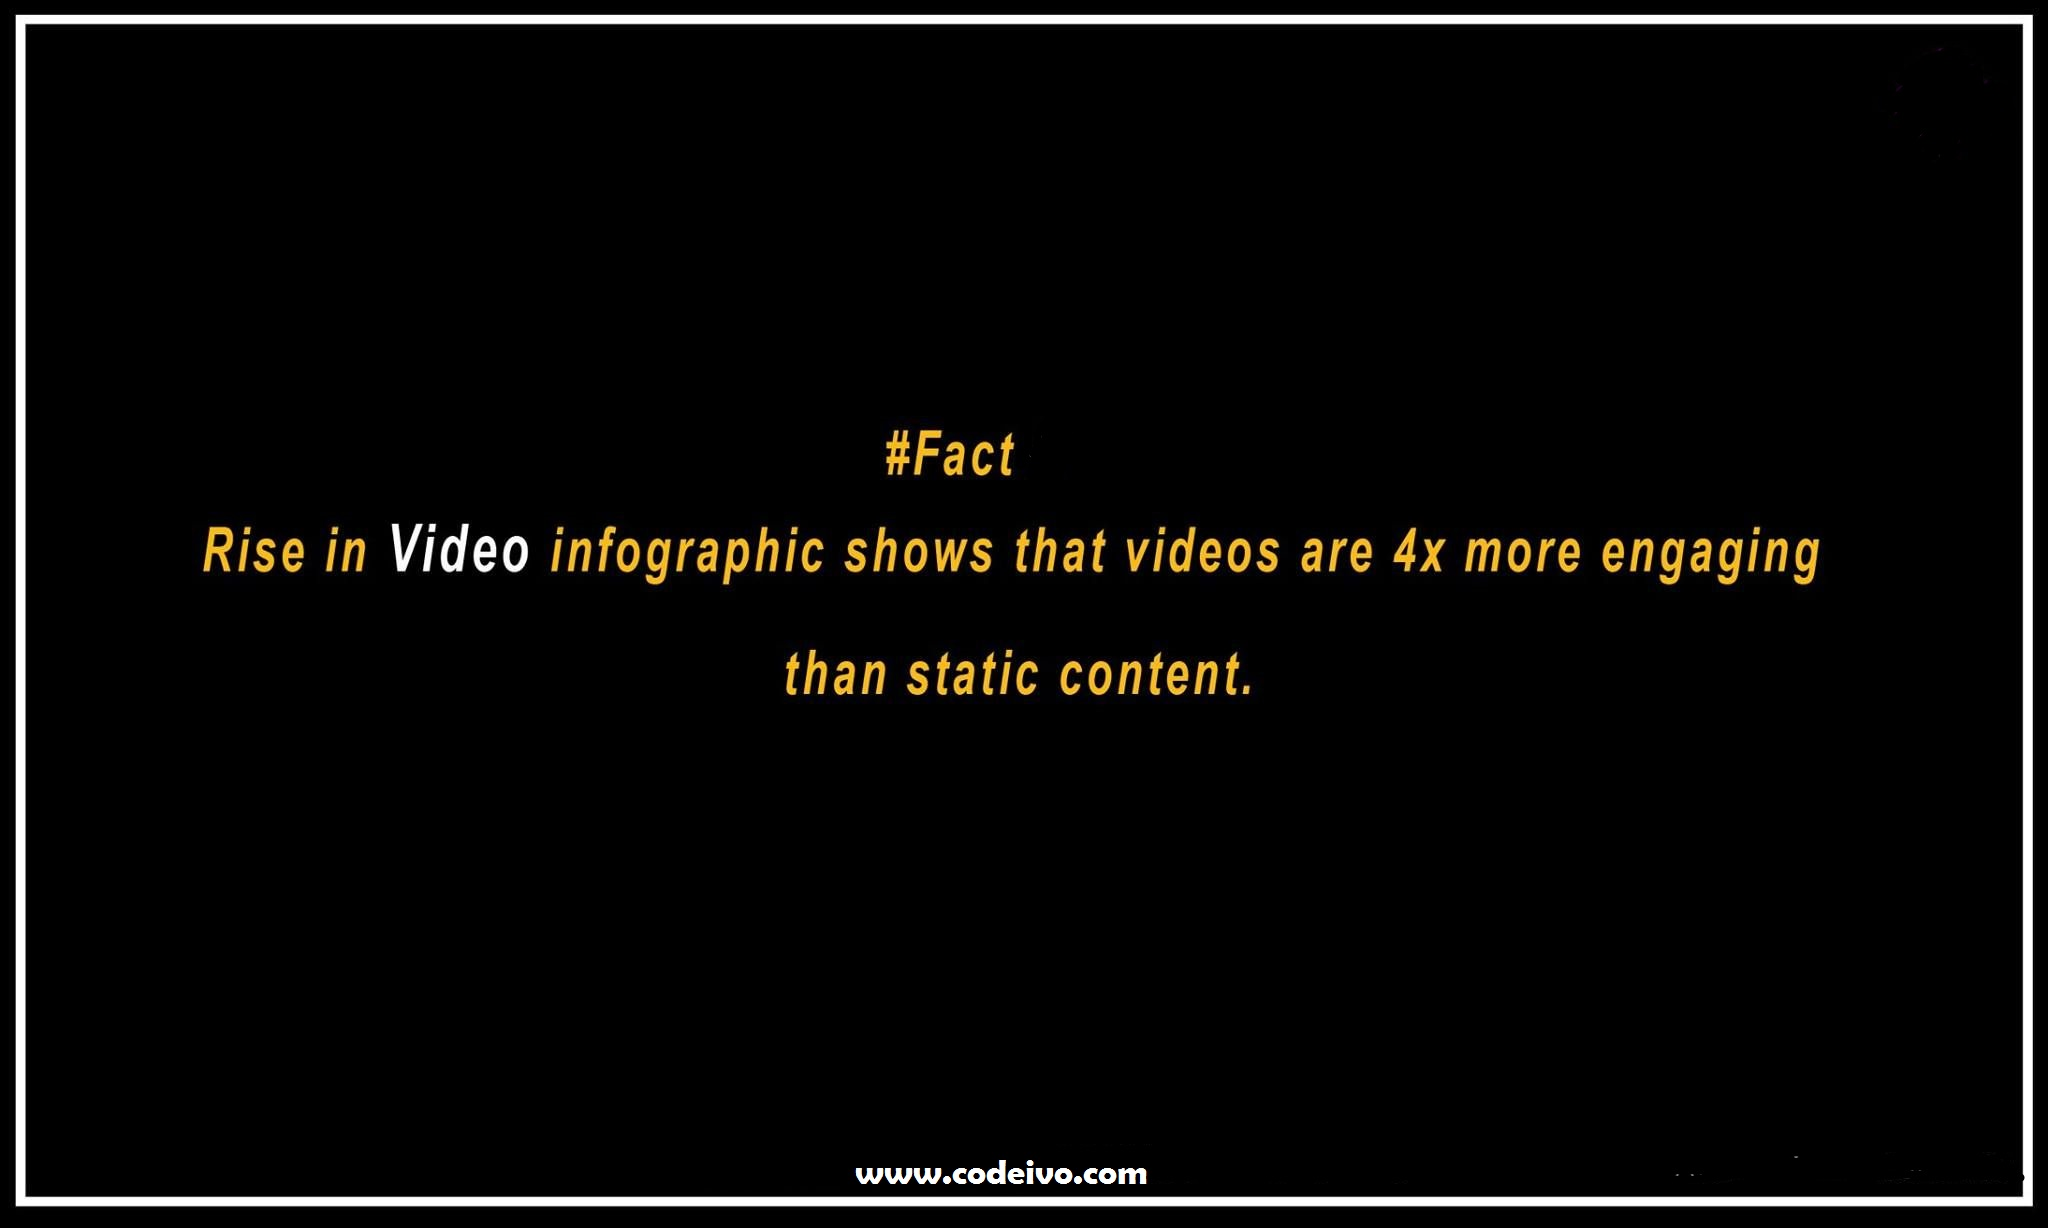 A Fact that states that Videos are more Engaging than Static Content